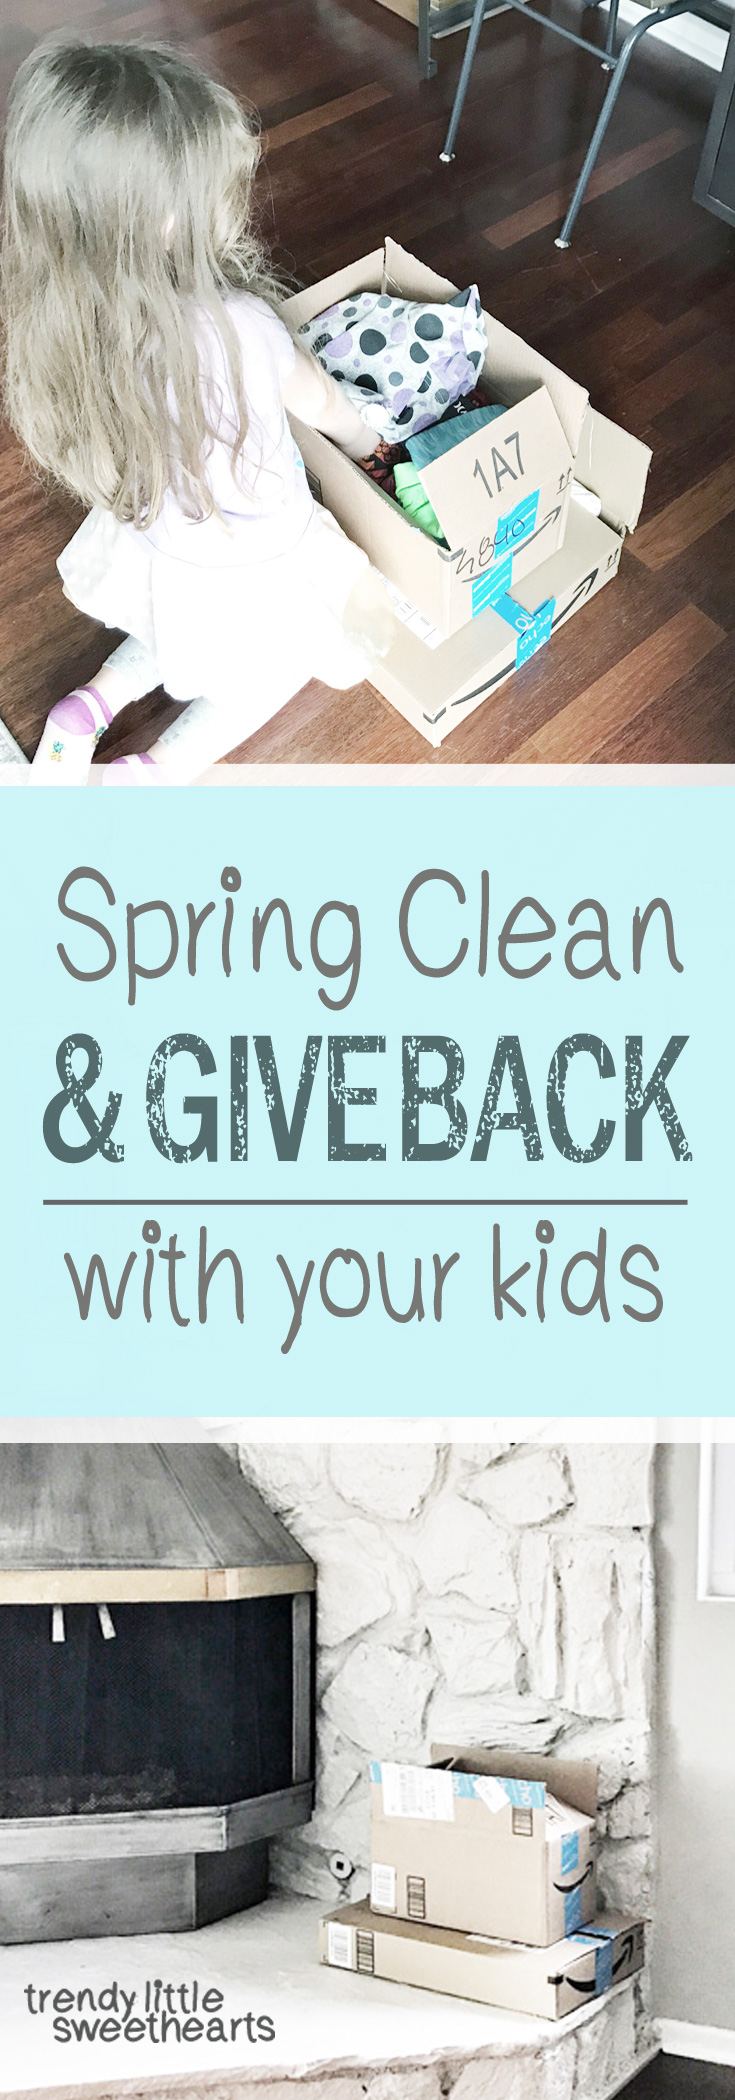 Ideas to spring clean by quickly sorting through closets and donating clothing with your kids. | Trendy Little Sweethearts